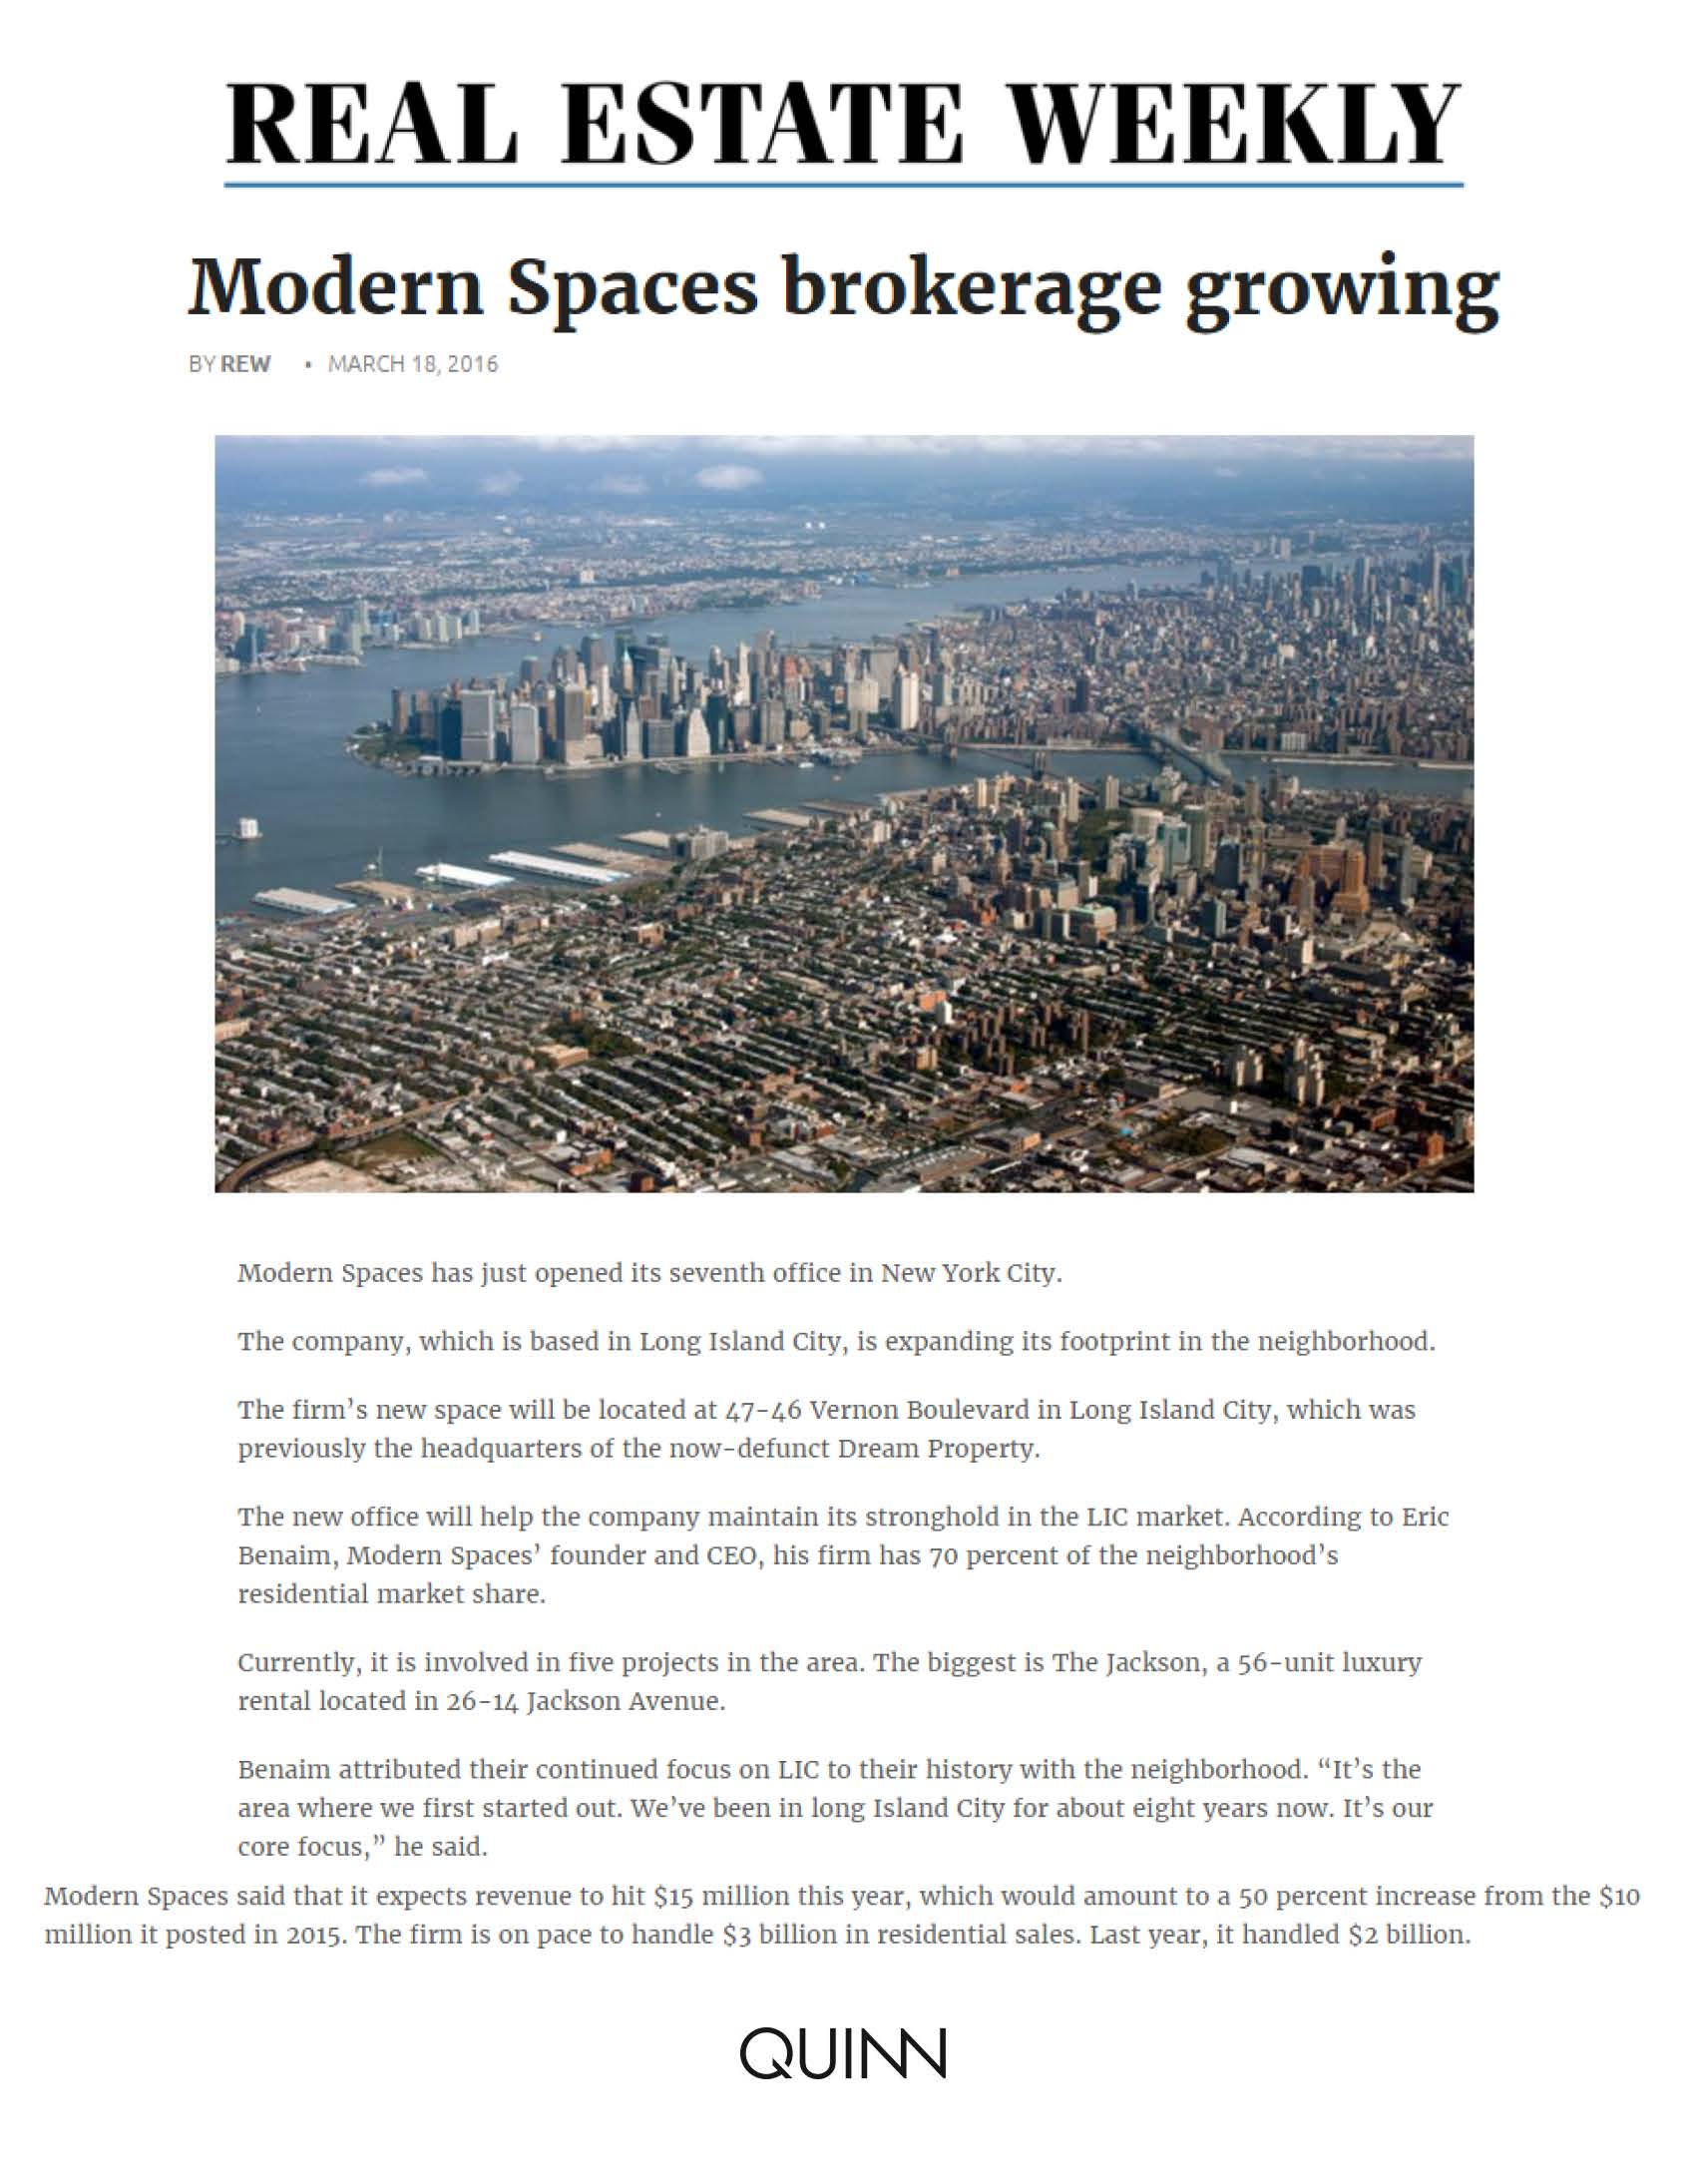 Real Estate Weekly Online - Modern Spaces brokerage growing - 03.18.16 (1)